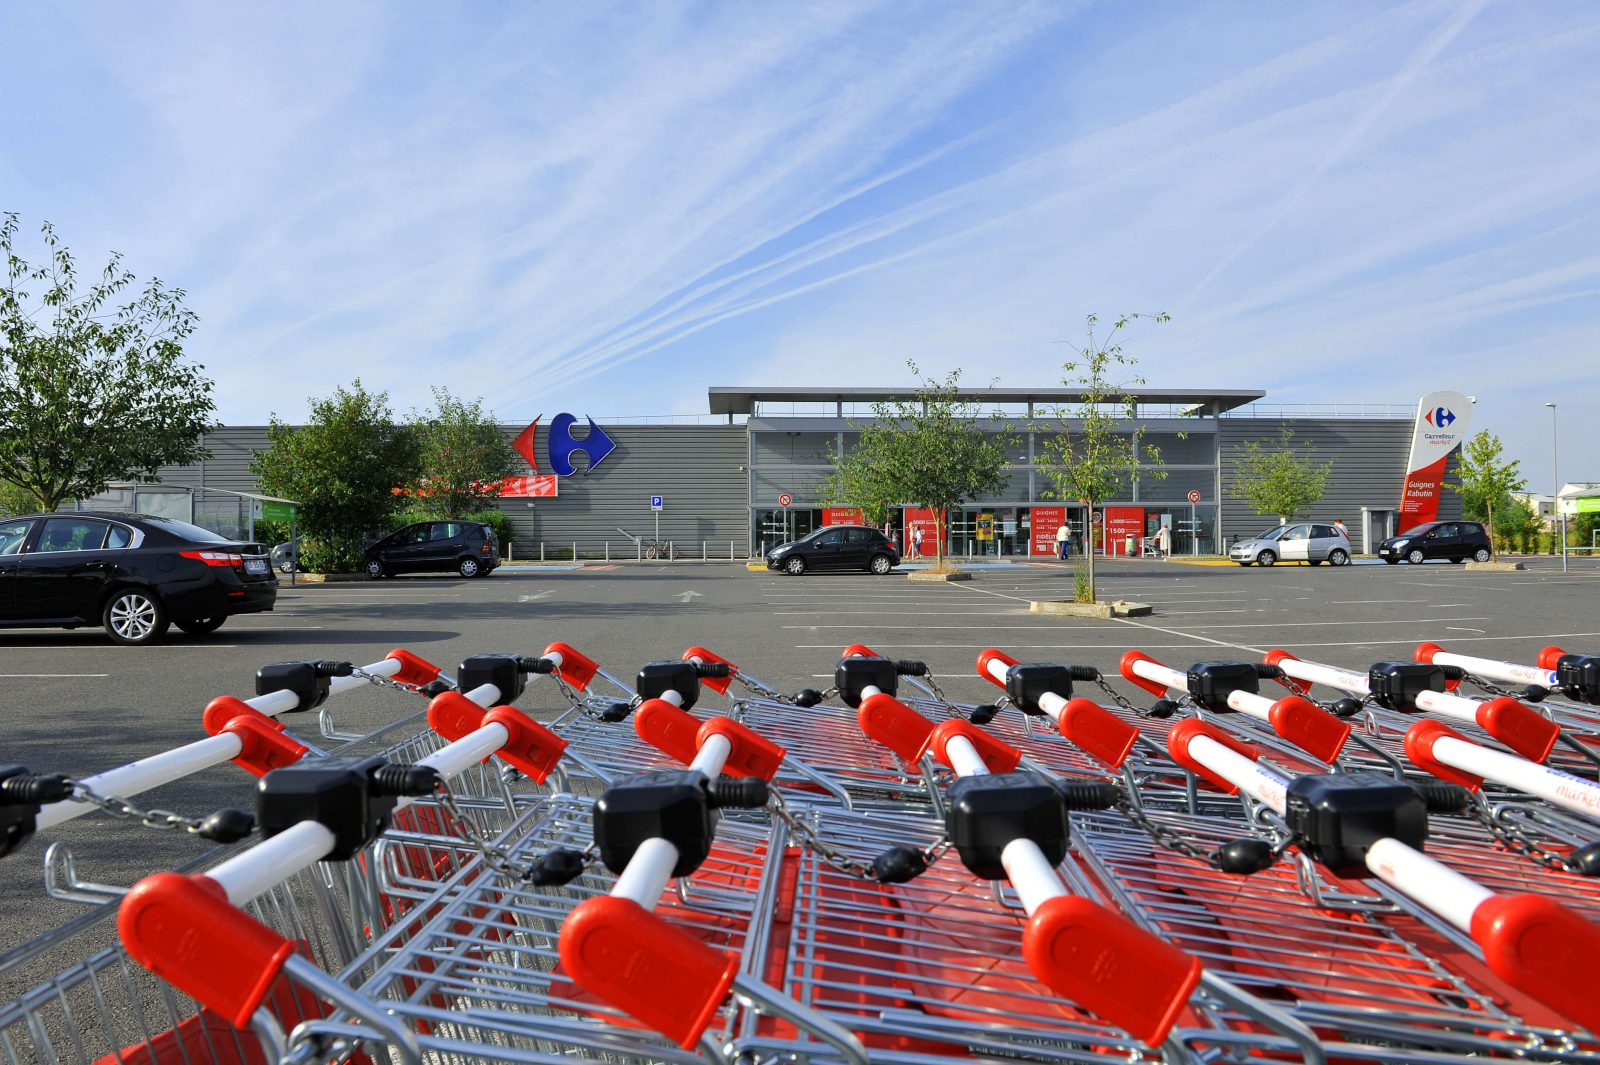 Implantation d'un Carrefour Market, Photo Jean-Paul HOUDRY